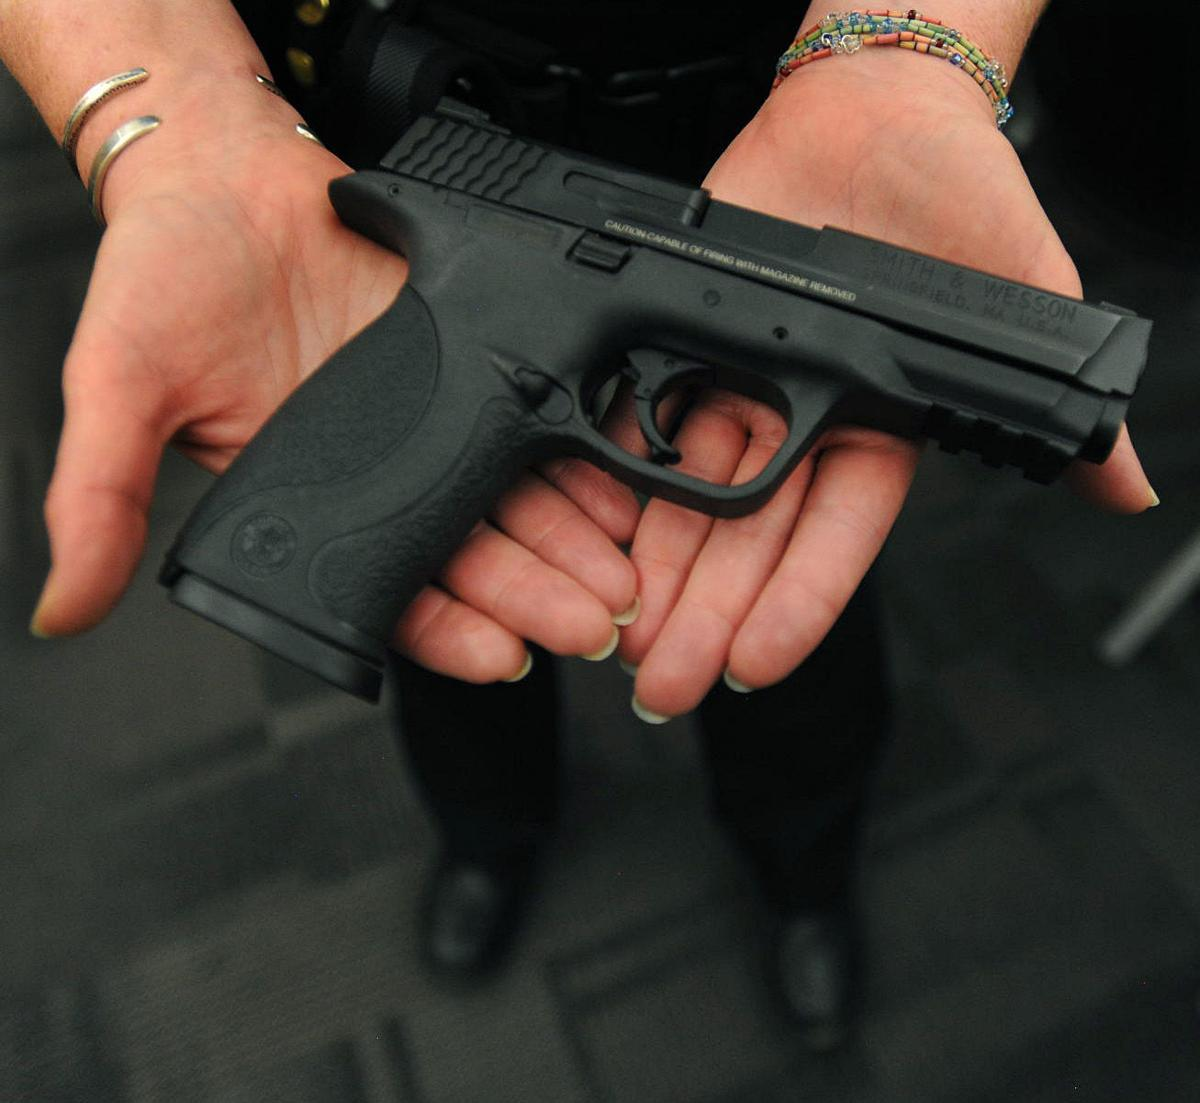 Colorado Springs police trade get new handguns with 'smoother trigger pull'